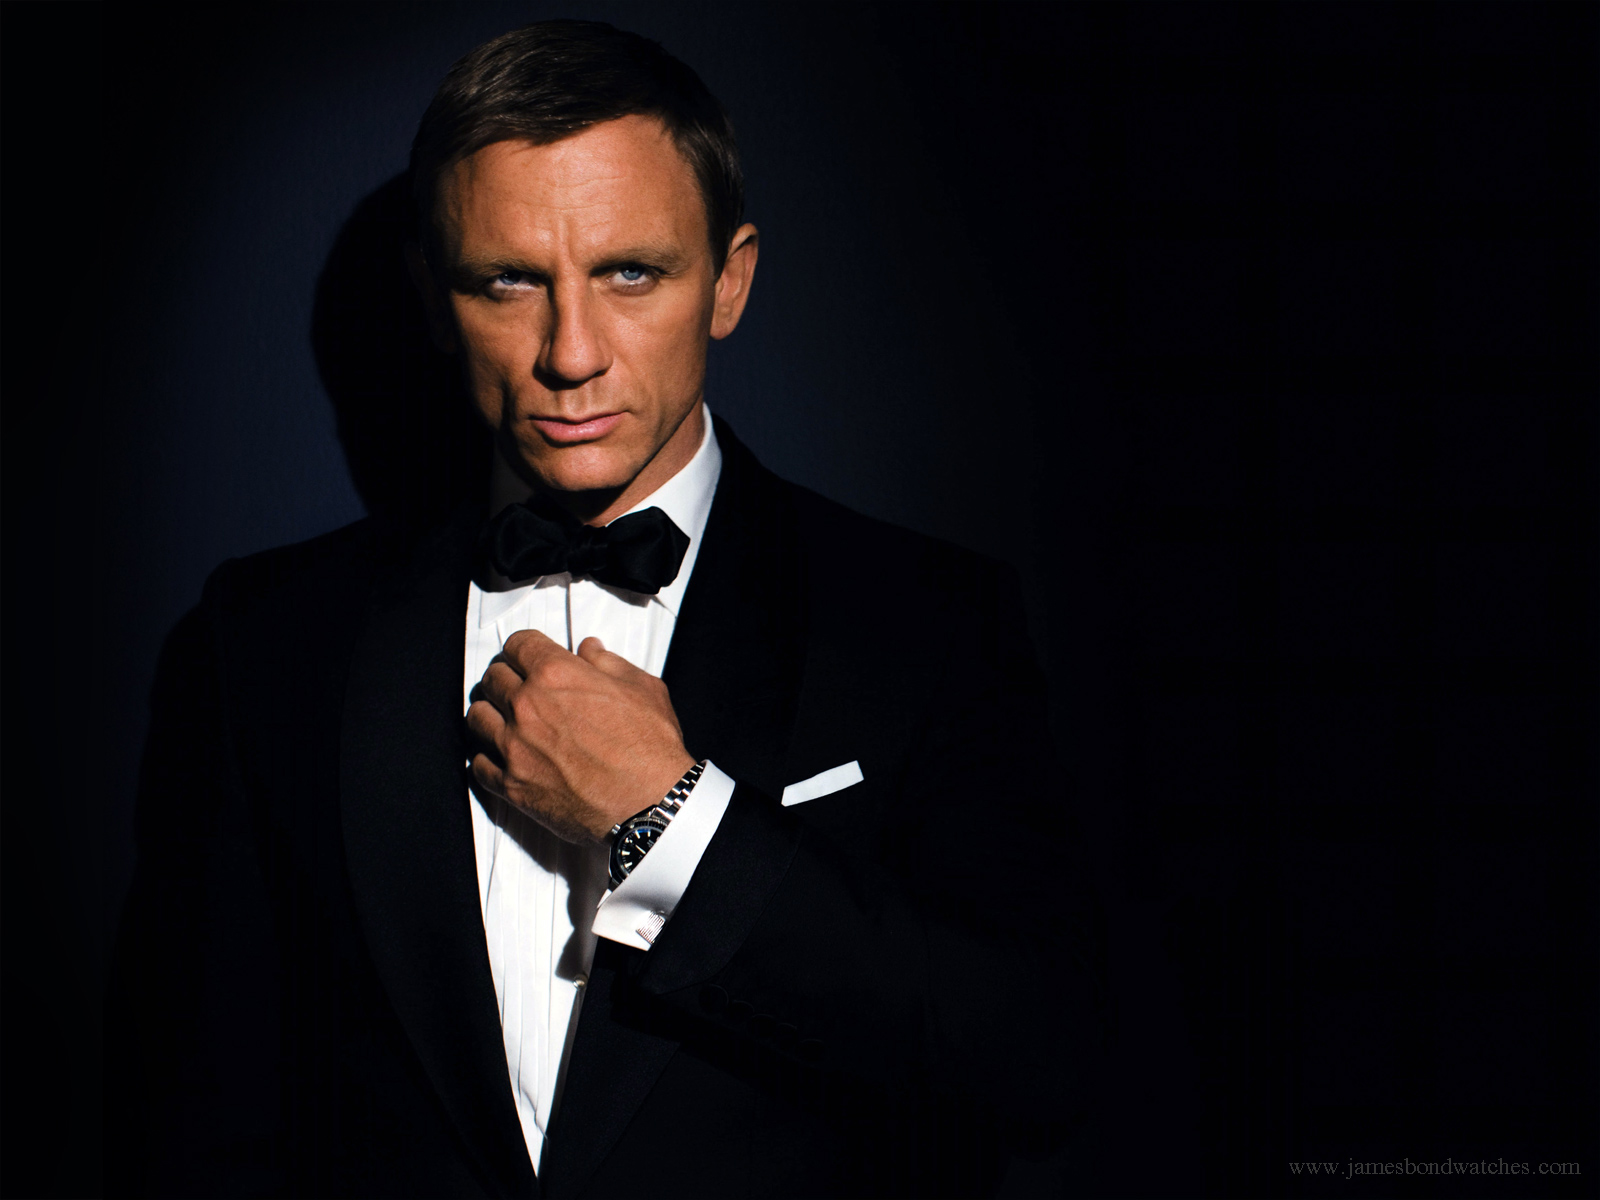 James Bond Wallpaper High Definition Wallpapers